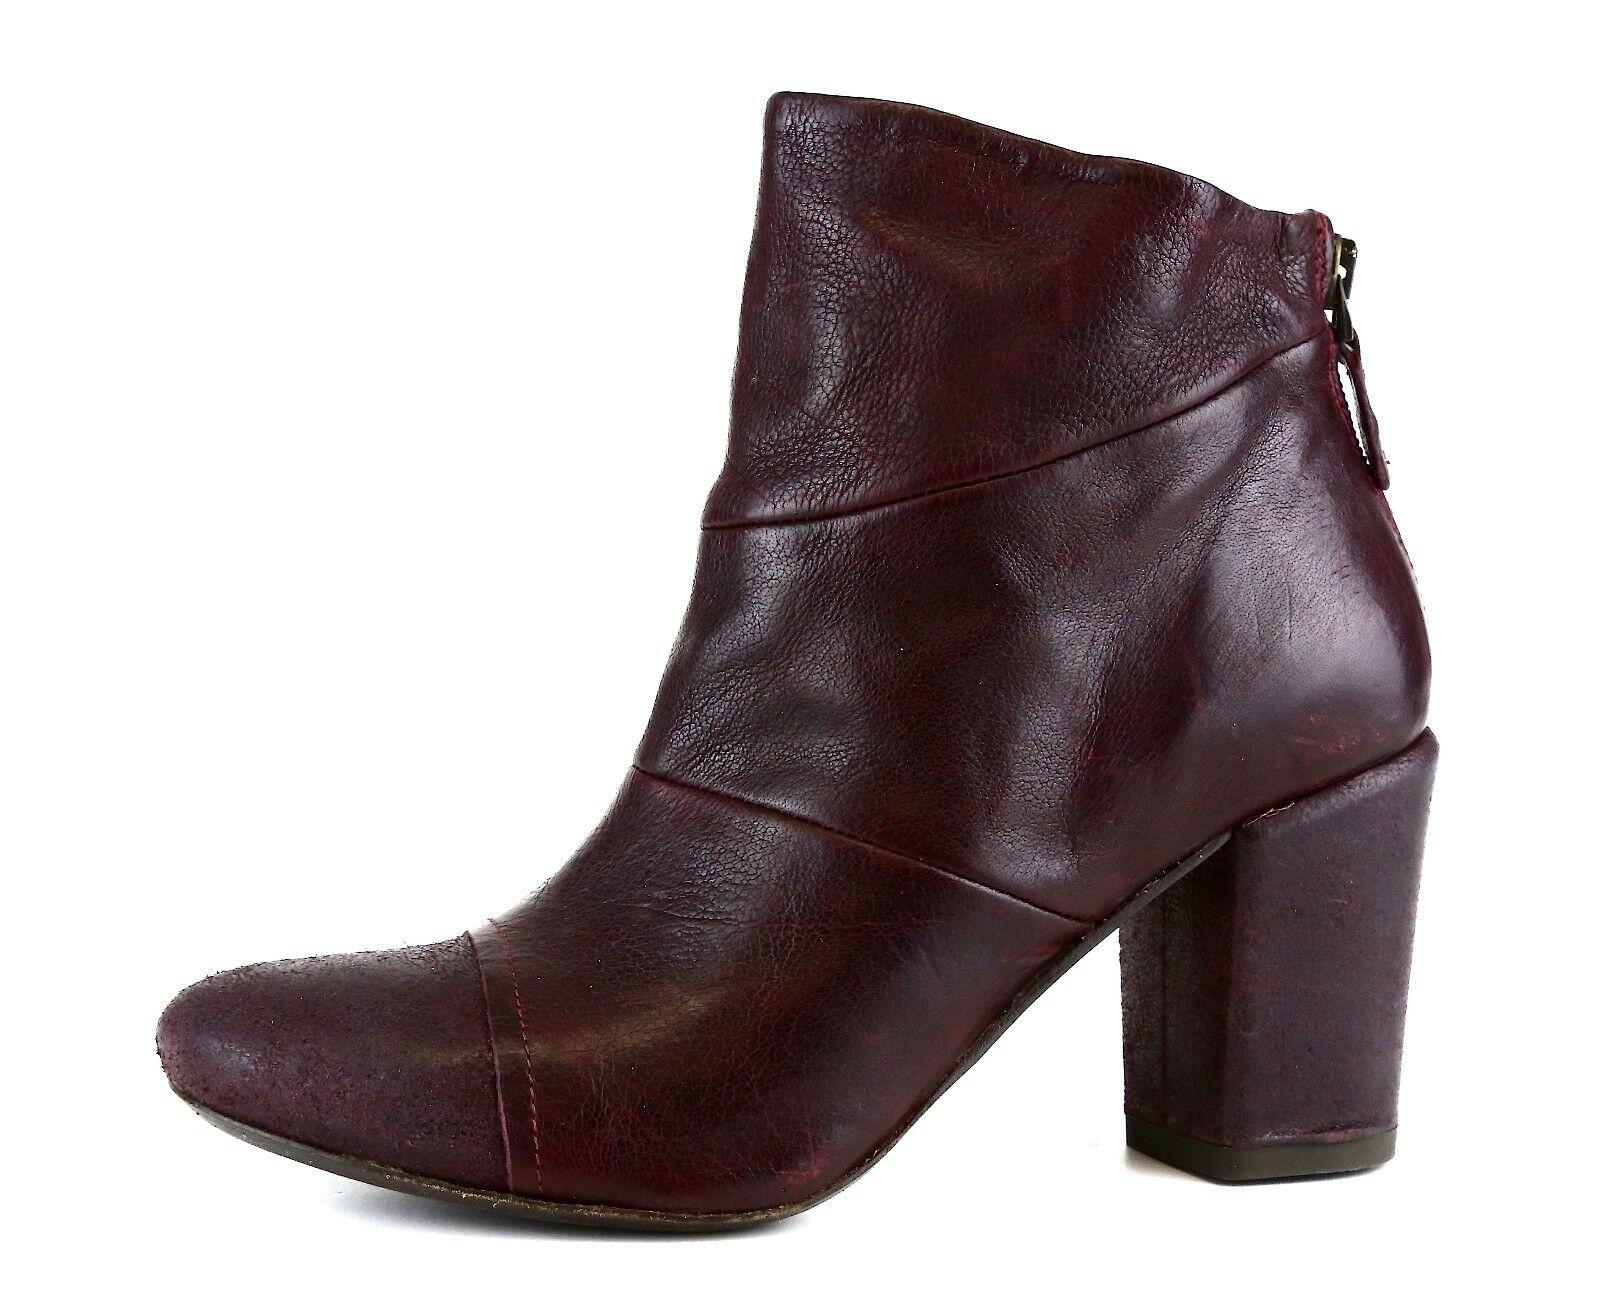 Latitude Femme Side Zip Leather Ankle Boot Burgundy Women Sz 37 5757 *